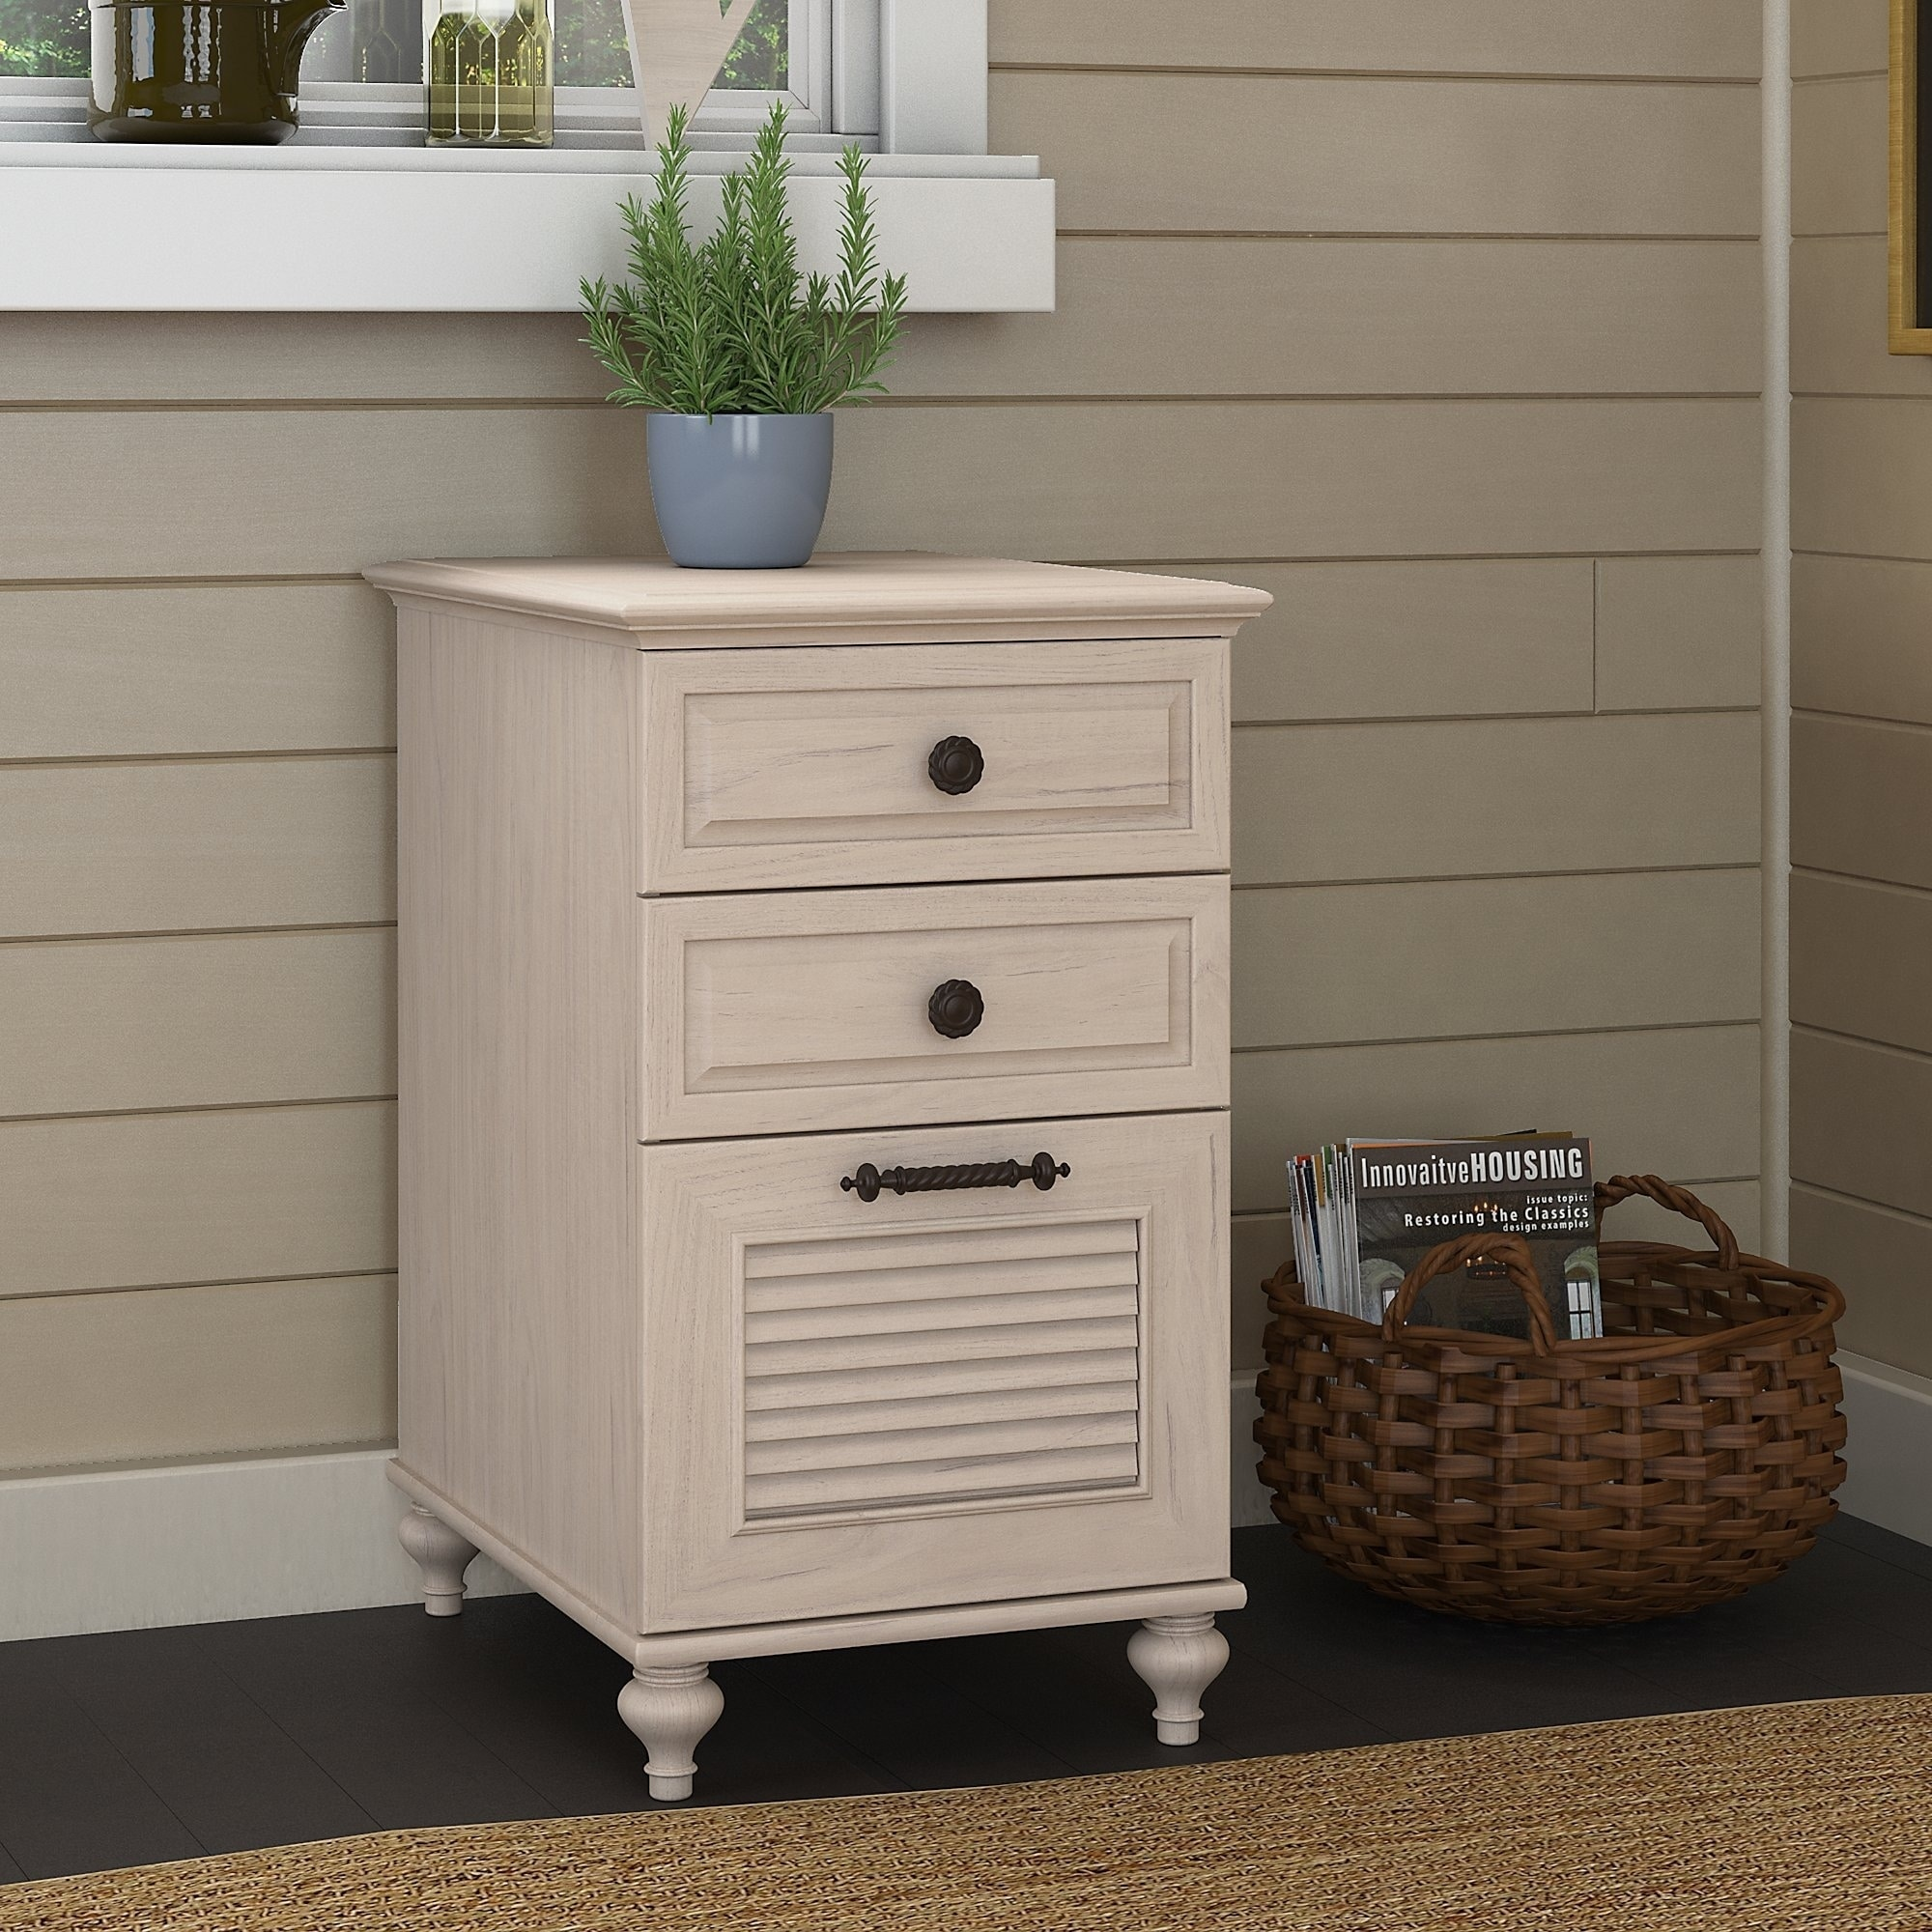 com cabinet mobile sauder file home dp kitchen via amazon nightstand pedestal drawer